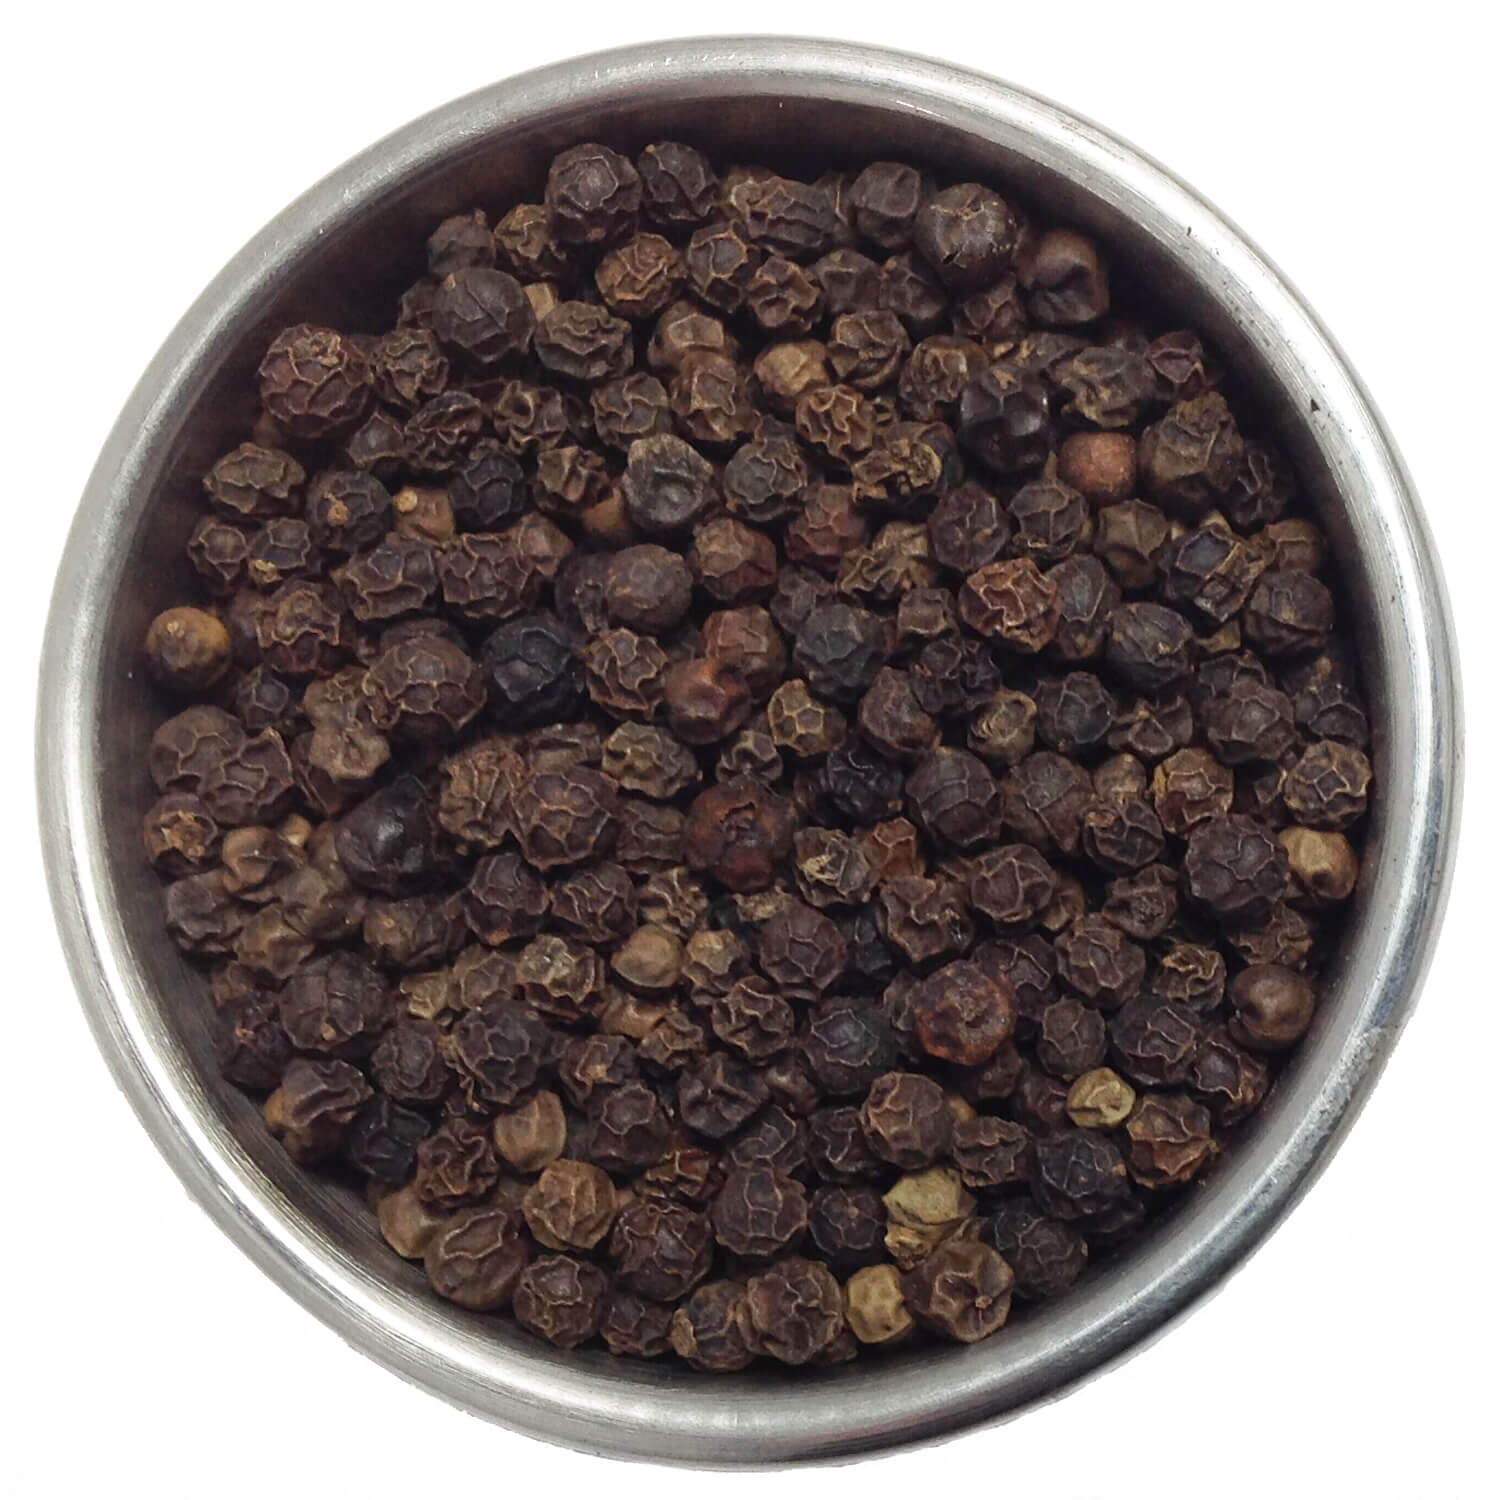 Buy Black Peppercorns Online in Australia